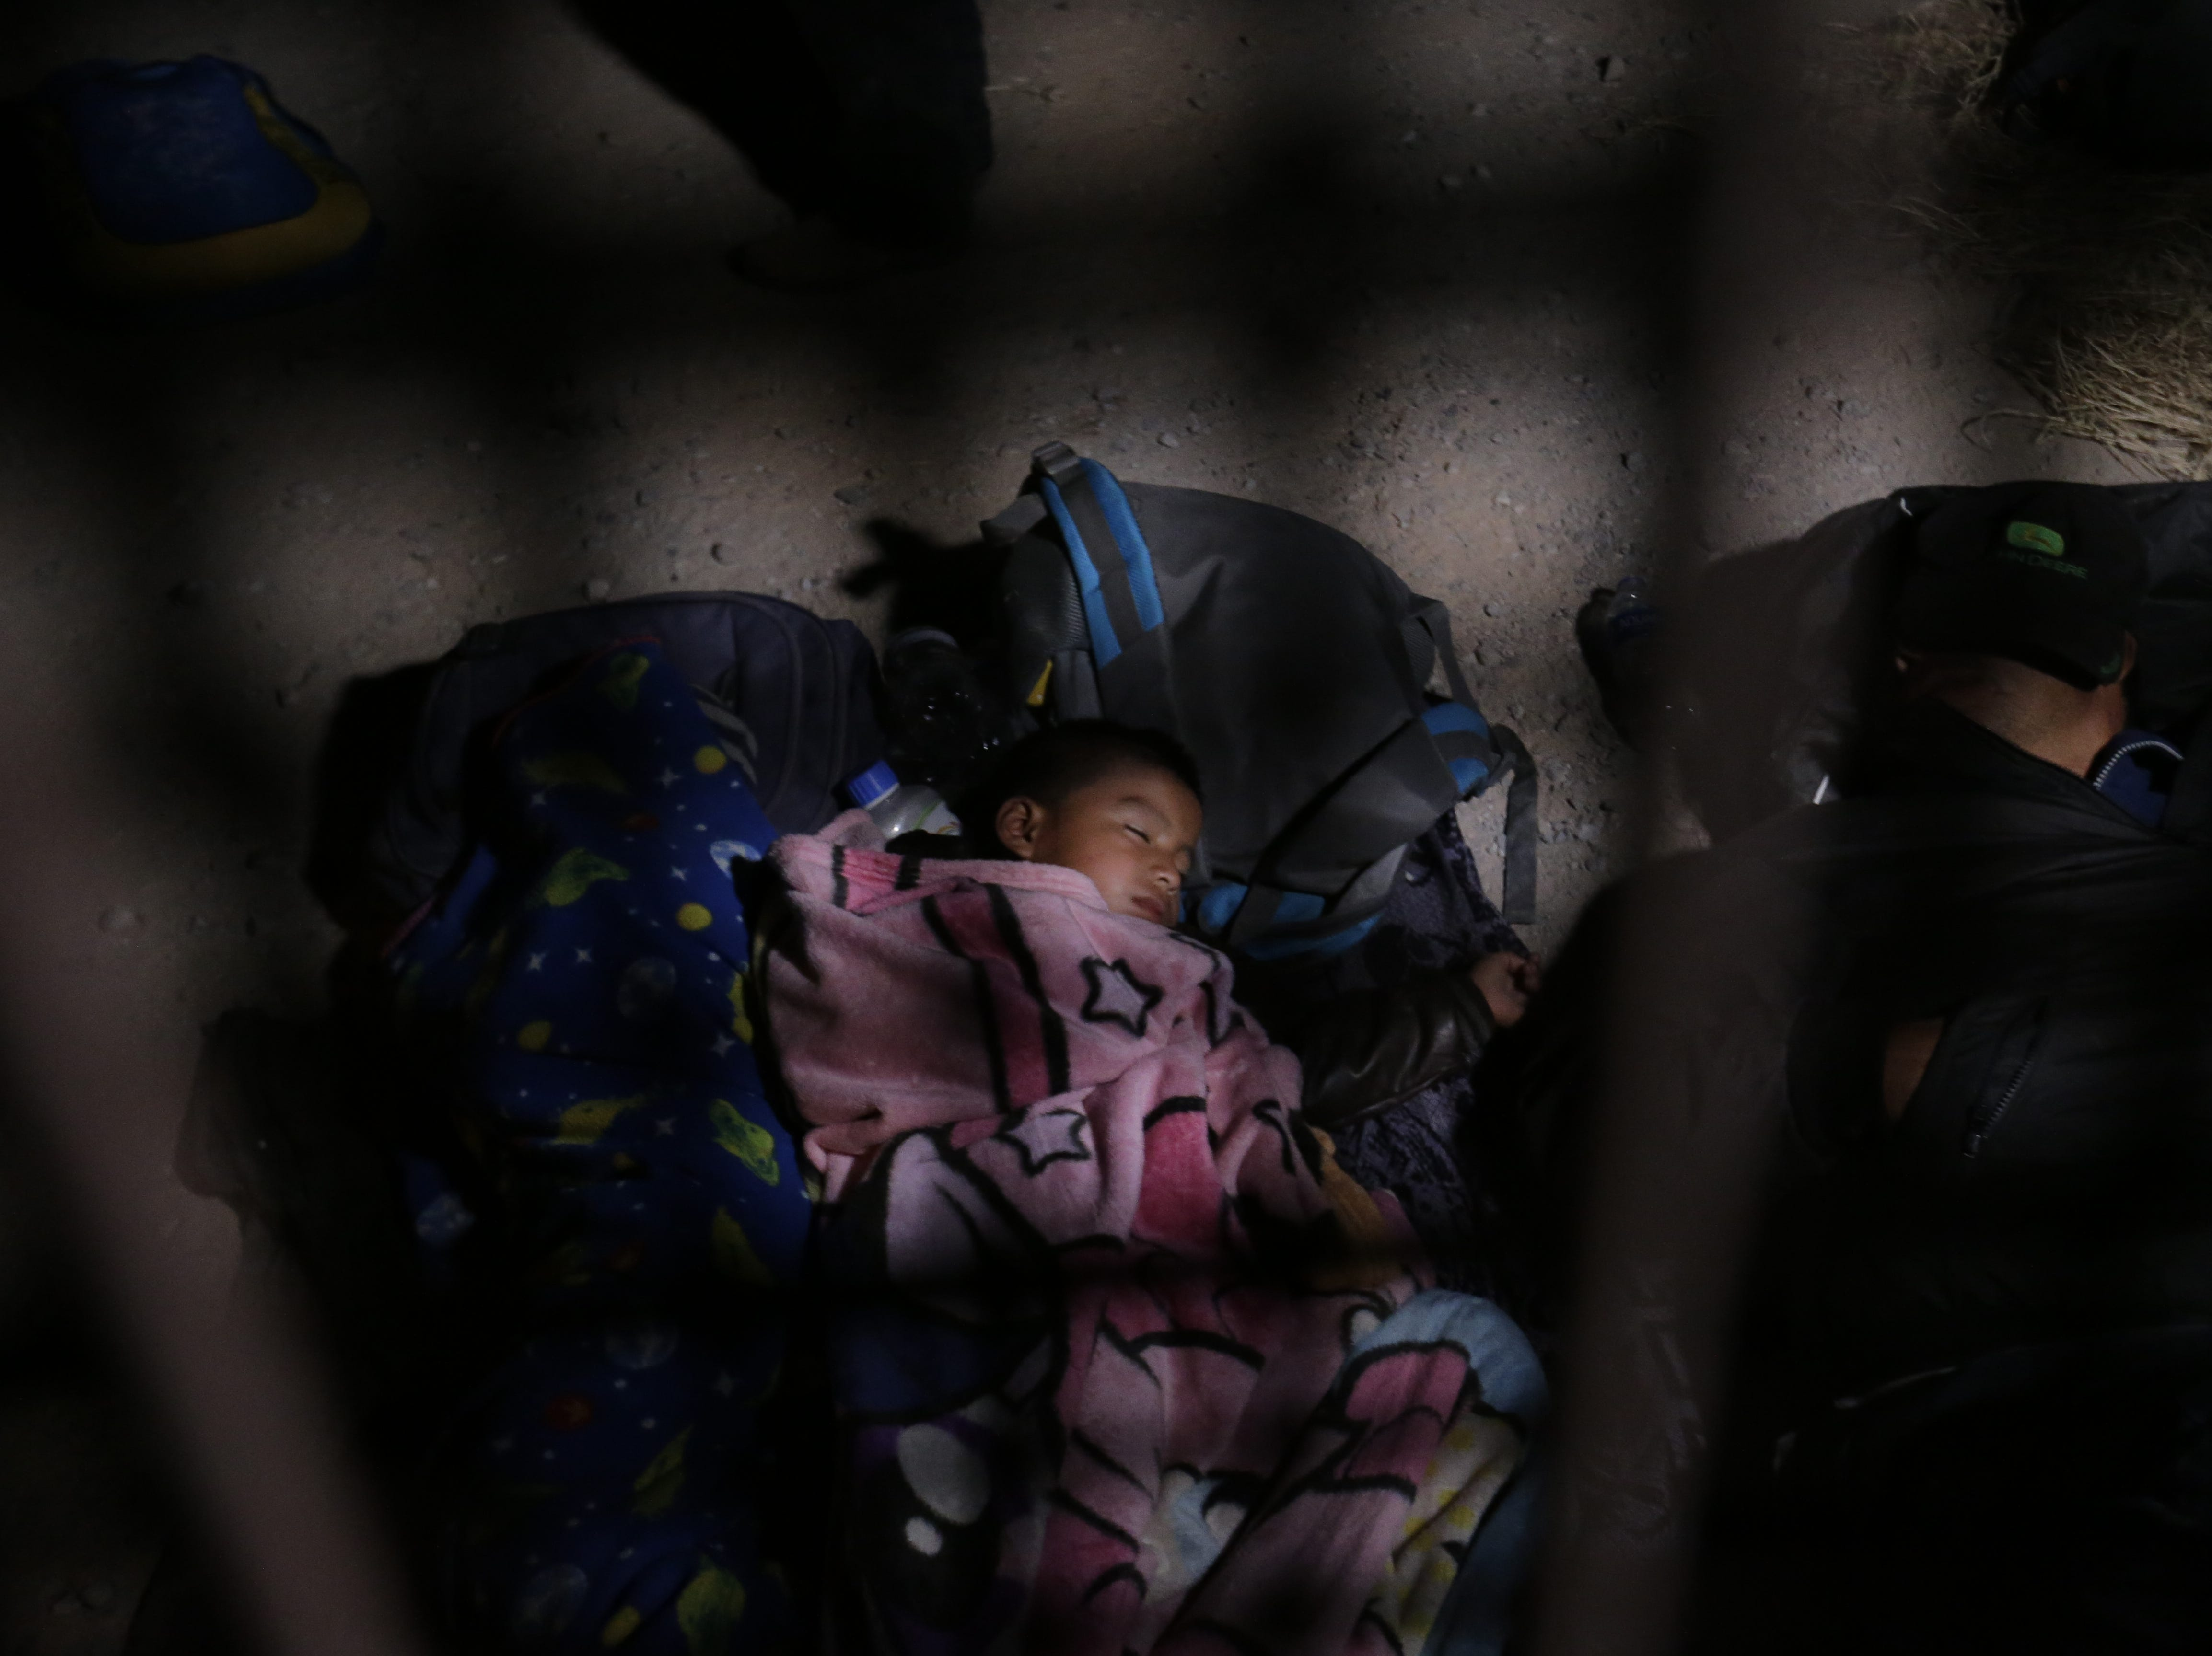 A group of 60 migrants from Guatemala, including children, awaited Border Patrol at a border in El Paso, Texas overnight.